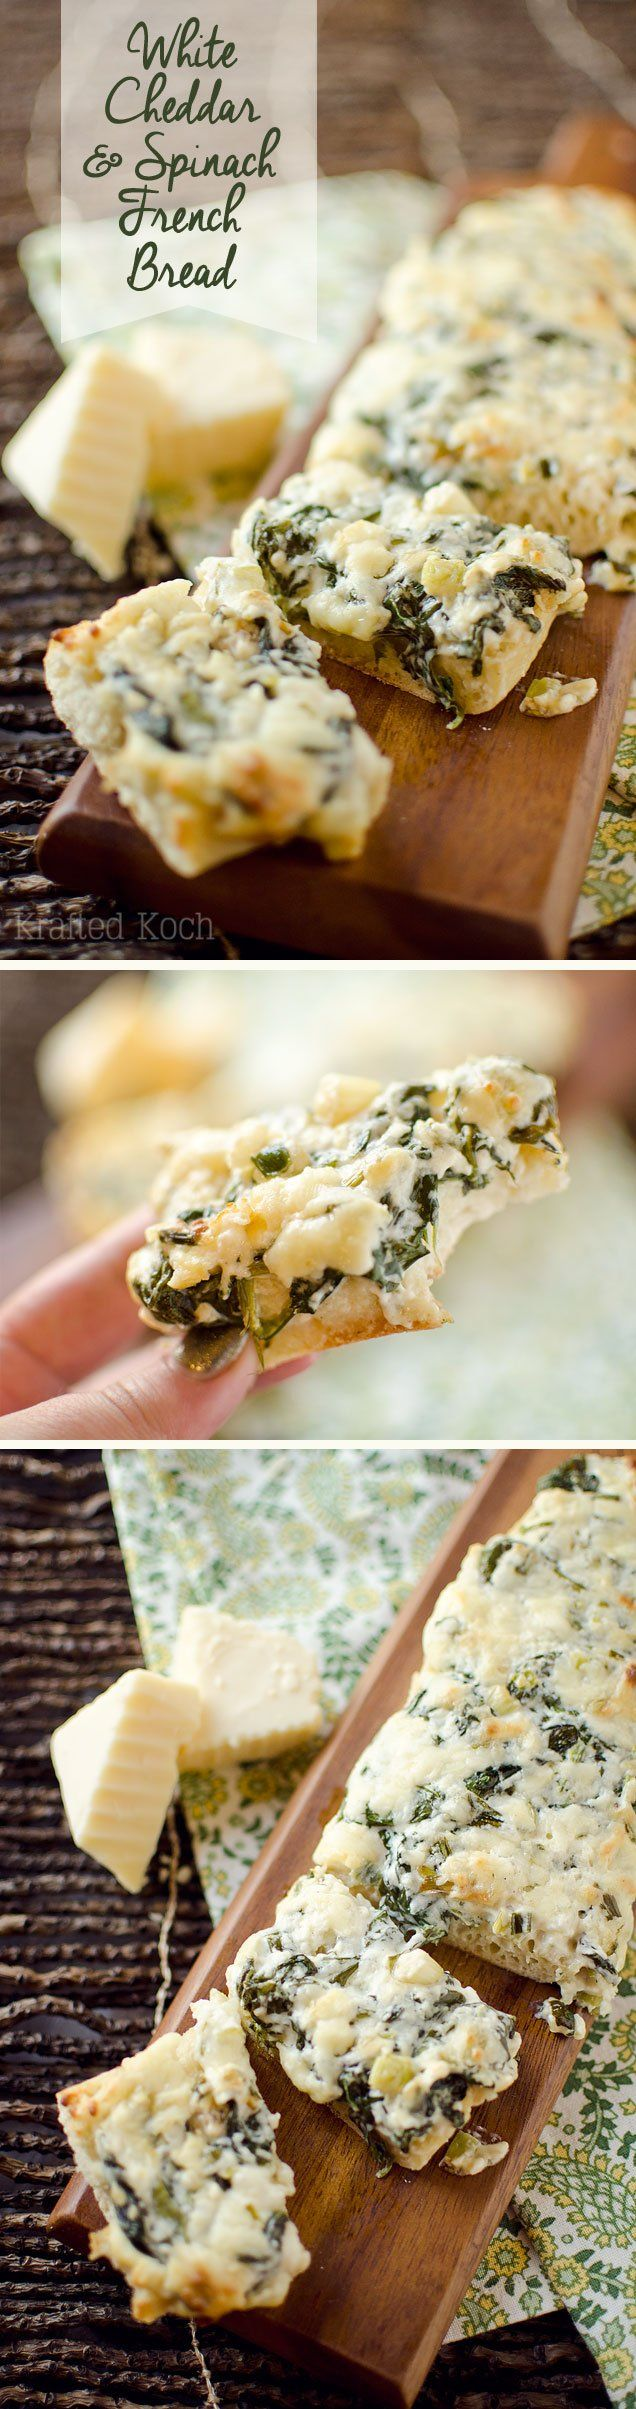 White Cheddar & Spinach French Bread - Krafted Koch - Crusty French bread topped with baby spinach sautéed in butter with garlic and green onions and mixed with extra sharp white cheddar for a decadent appetizer or vegetarian entrée recipe your guests will devour!